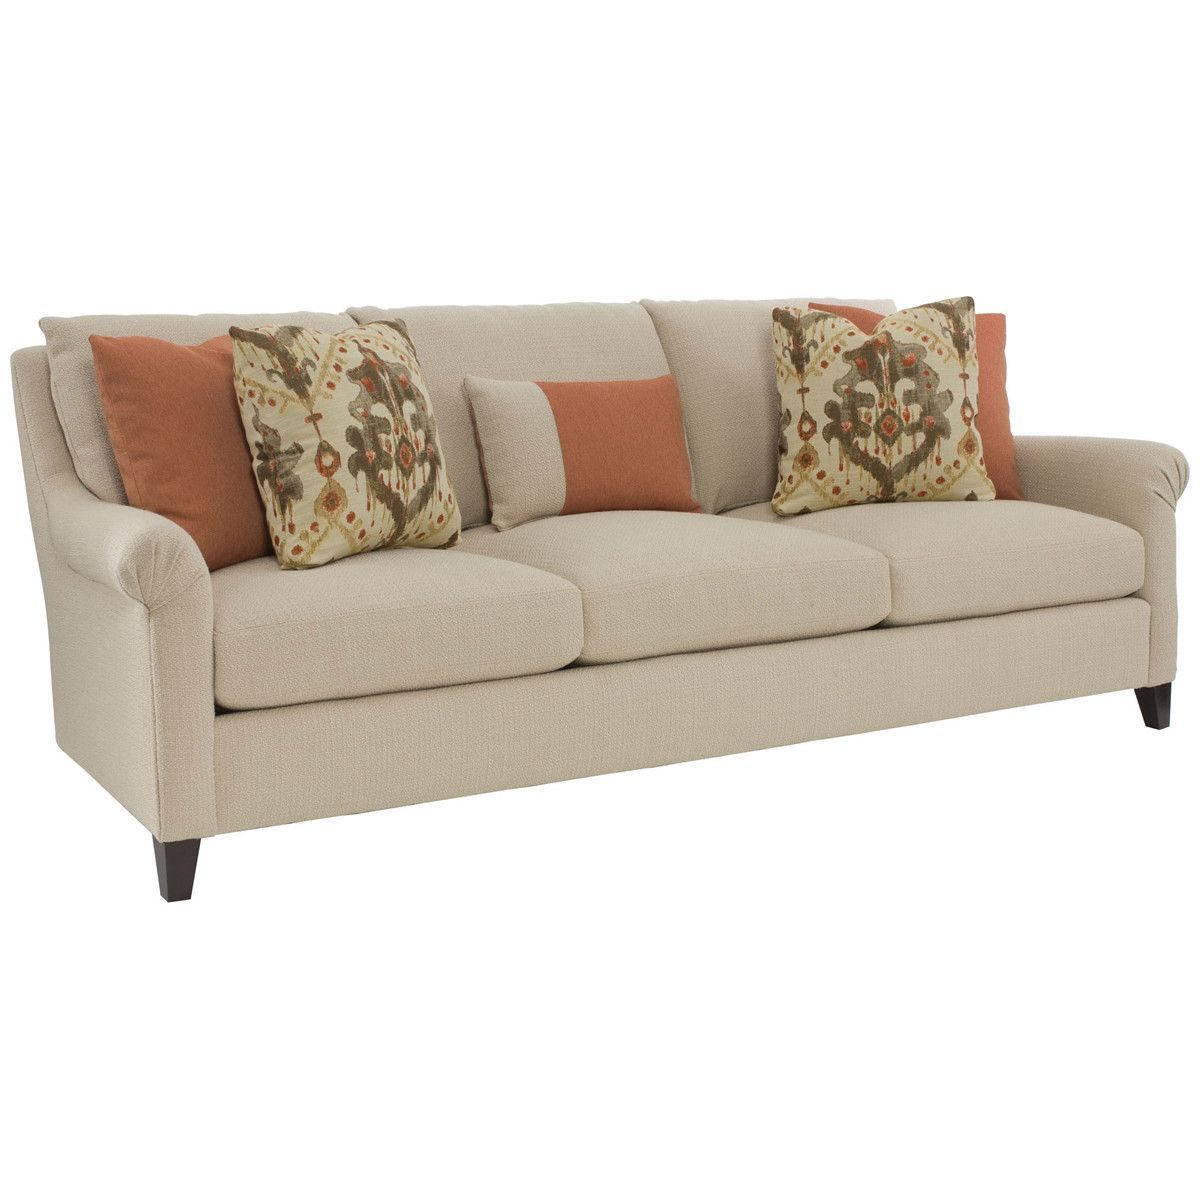 bernhardt upholstery sherman sofa upholstery and products